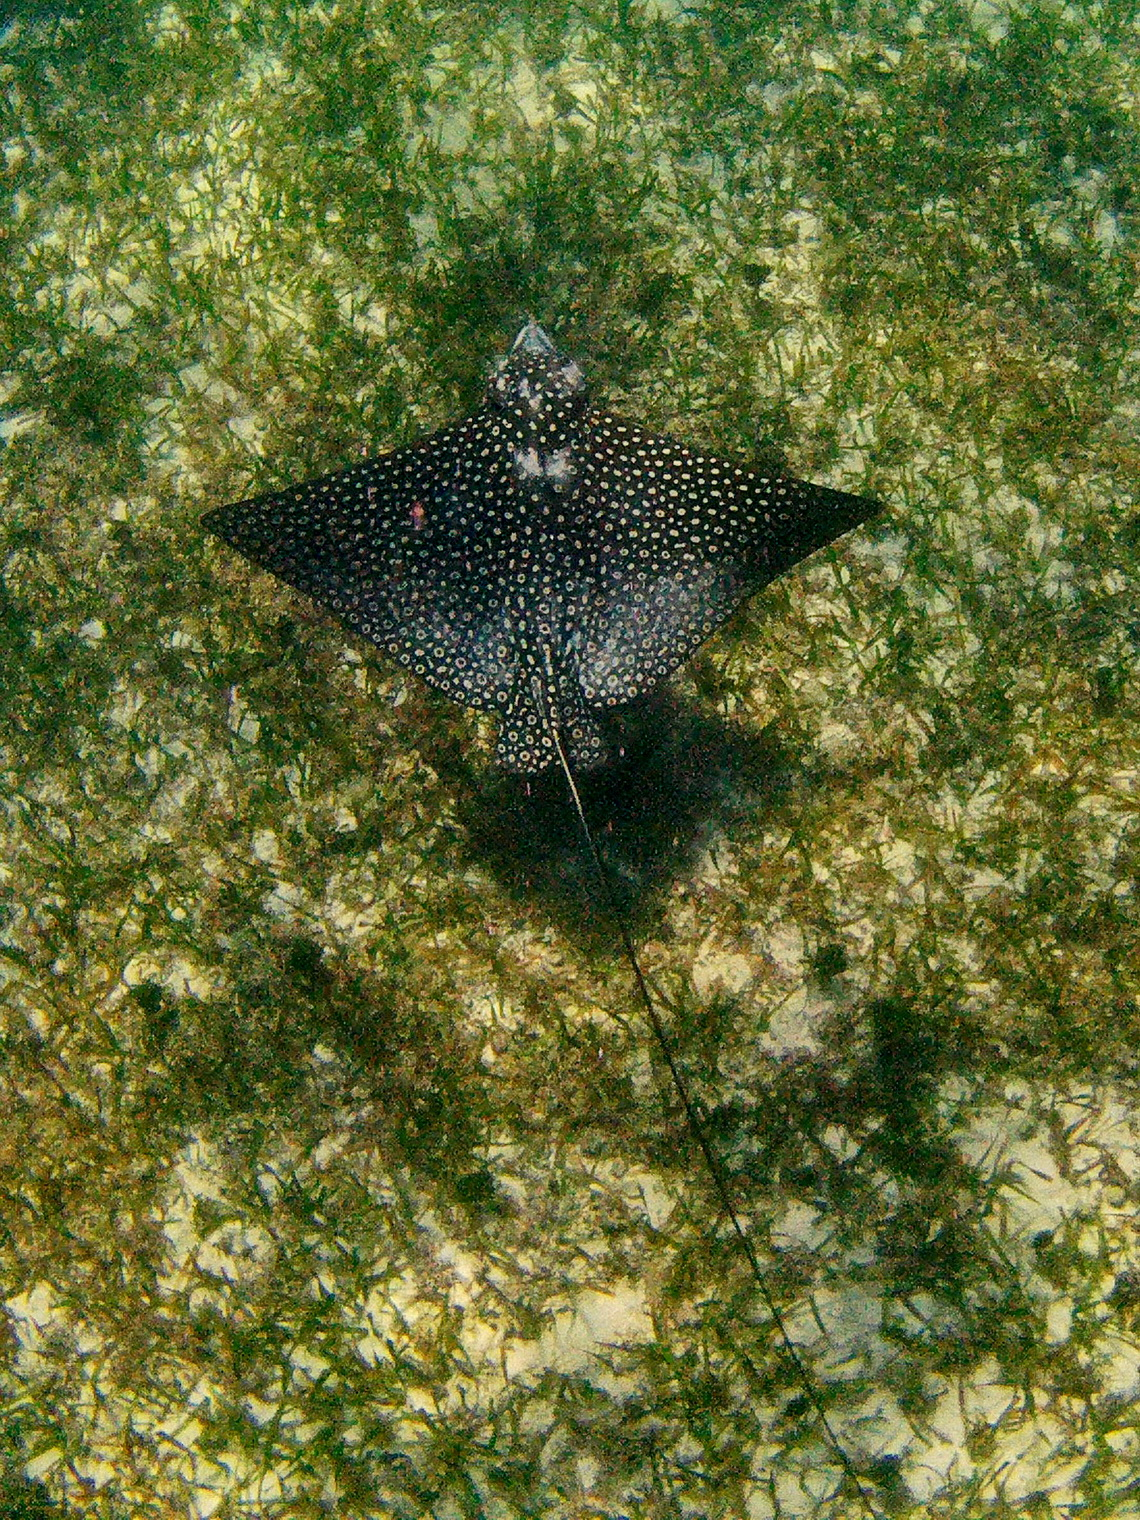 Spotted Eagle Ray in the shallow water of Sargeant's Caye